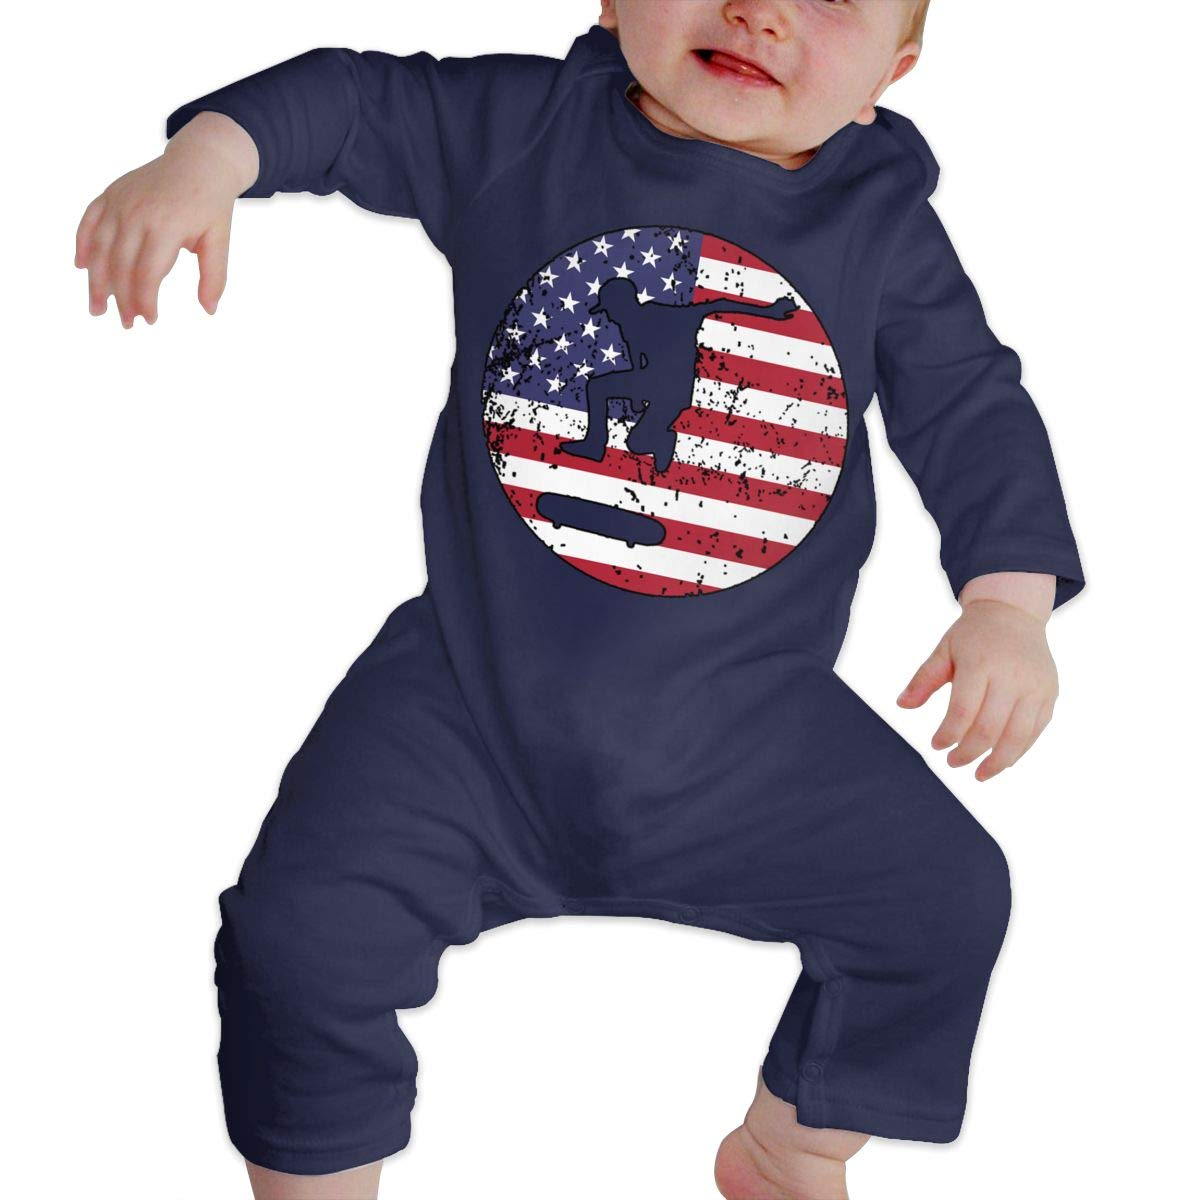 Just Born Baby Boys Girls Romper Jumpsuit American Flag Skateboarding Cotton Long Sleeve Climb Romper